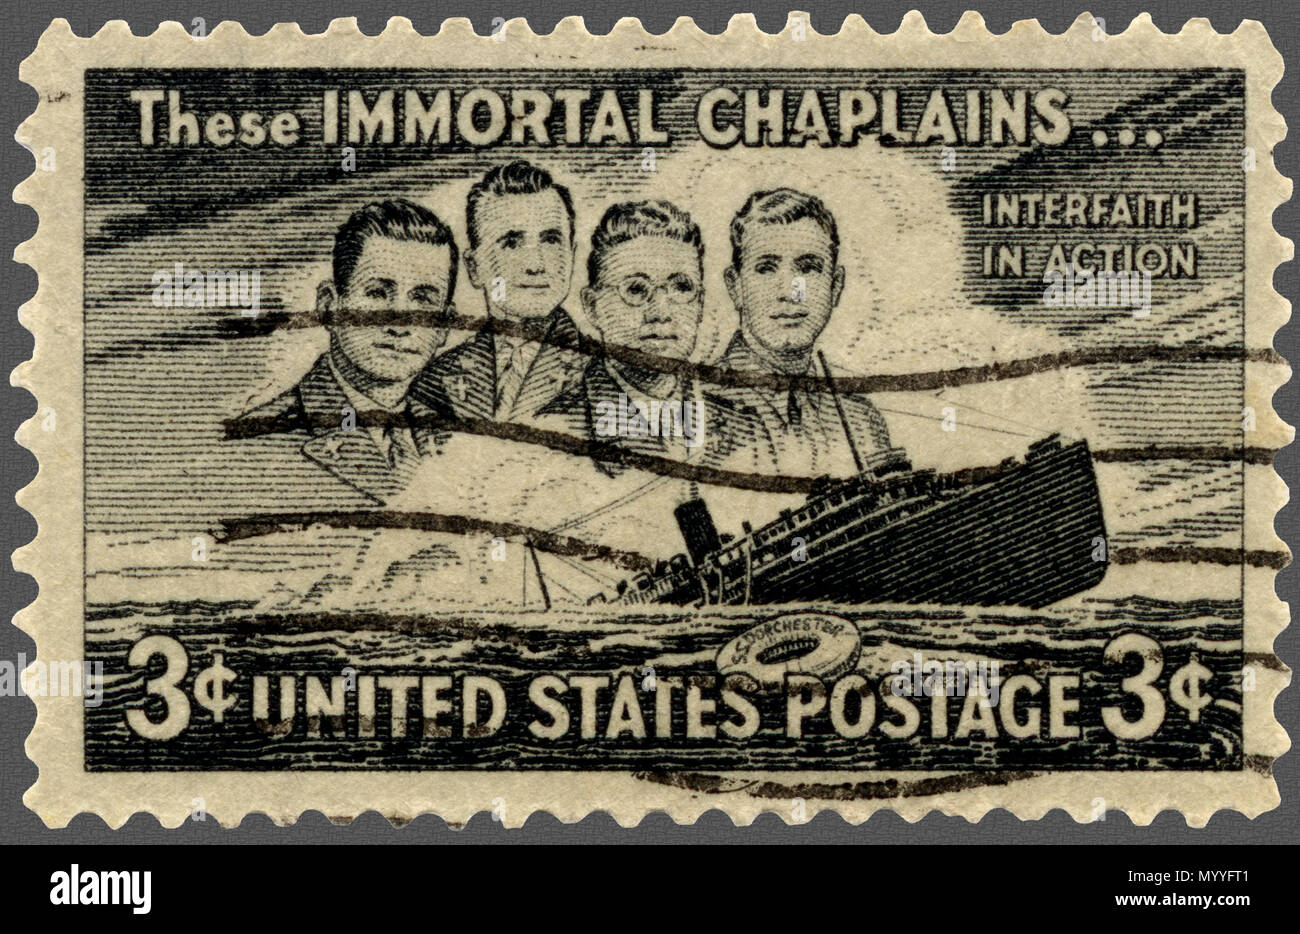 Immortal Chaplains Interfaith In Action Postage Stamp - Stock Image